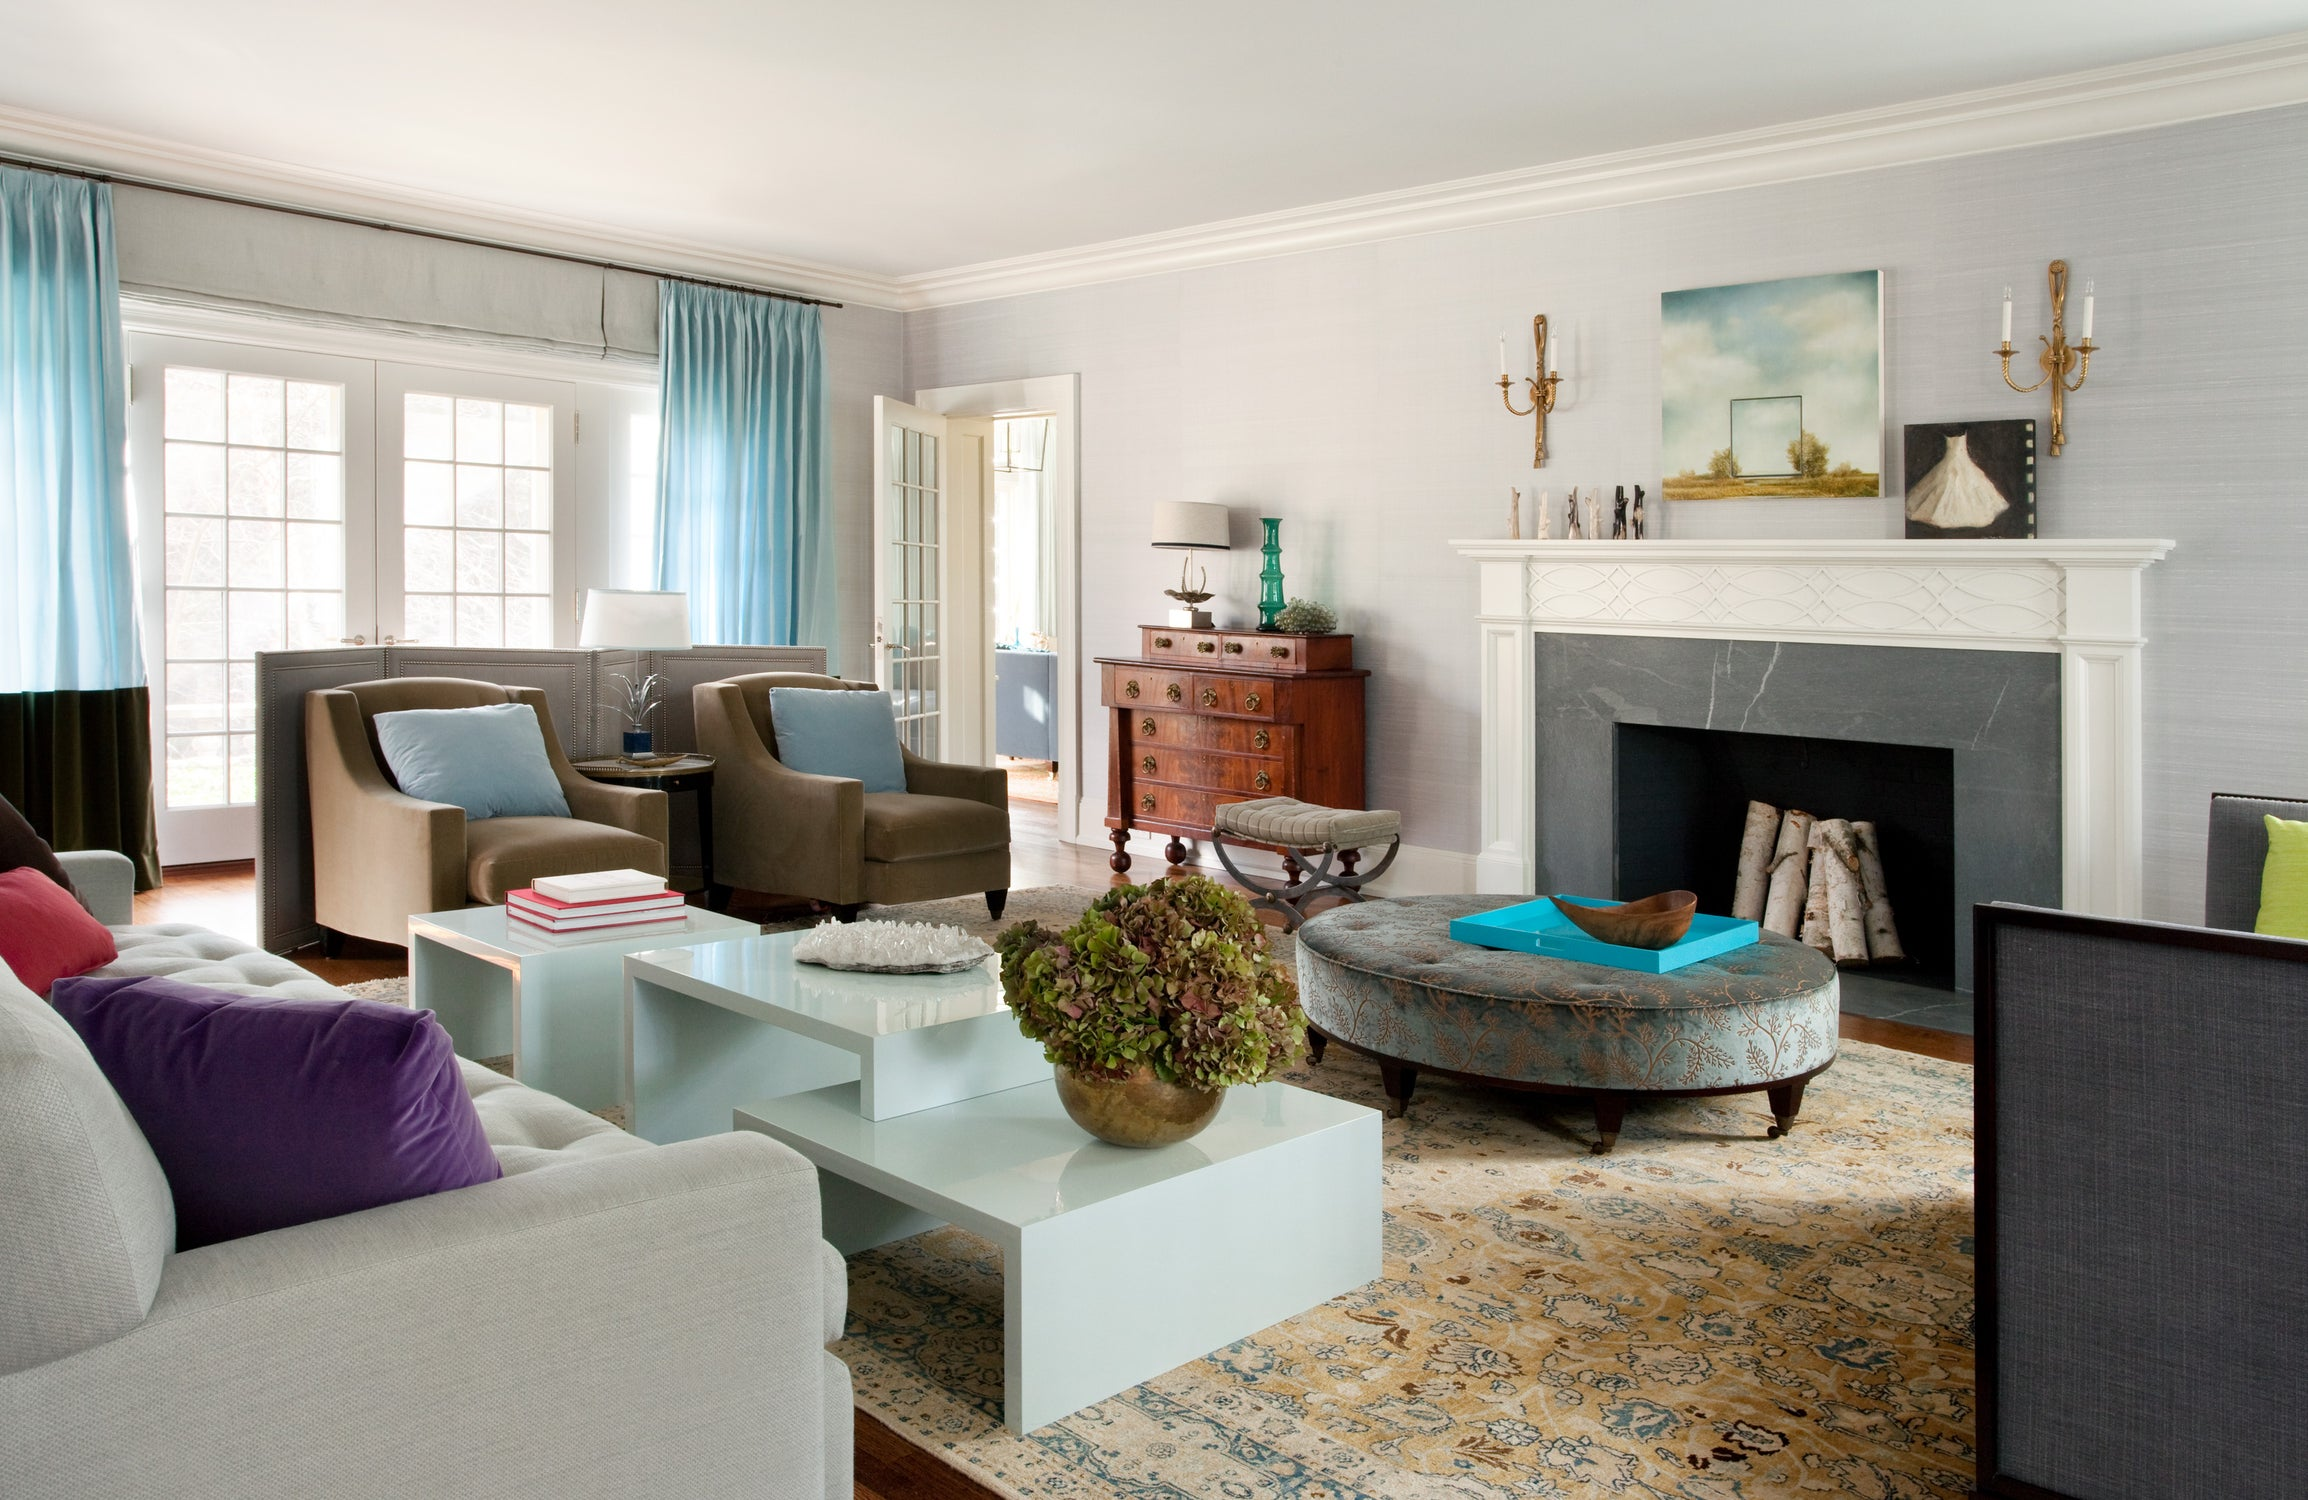 . Living Room by Frank Roop Design Interiors on 1stdibs